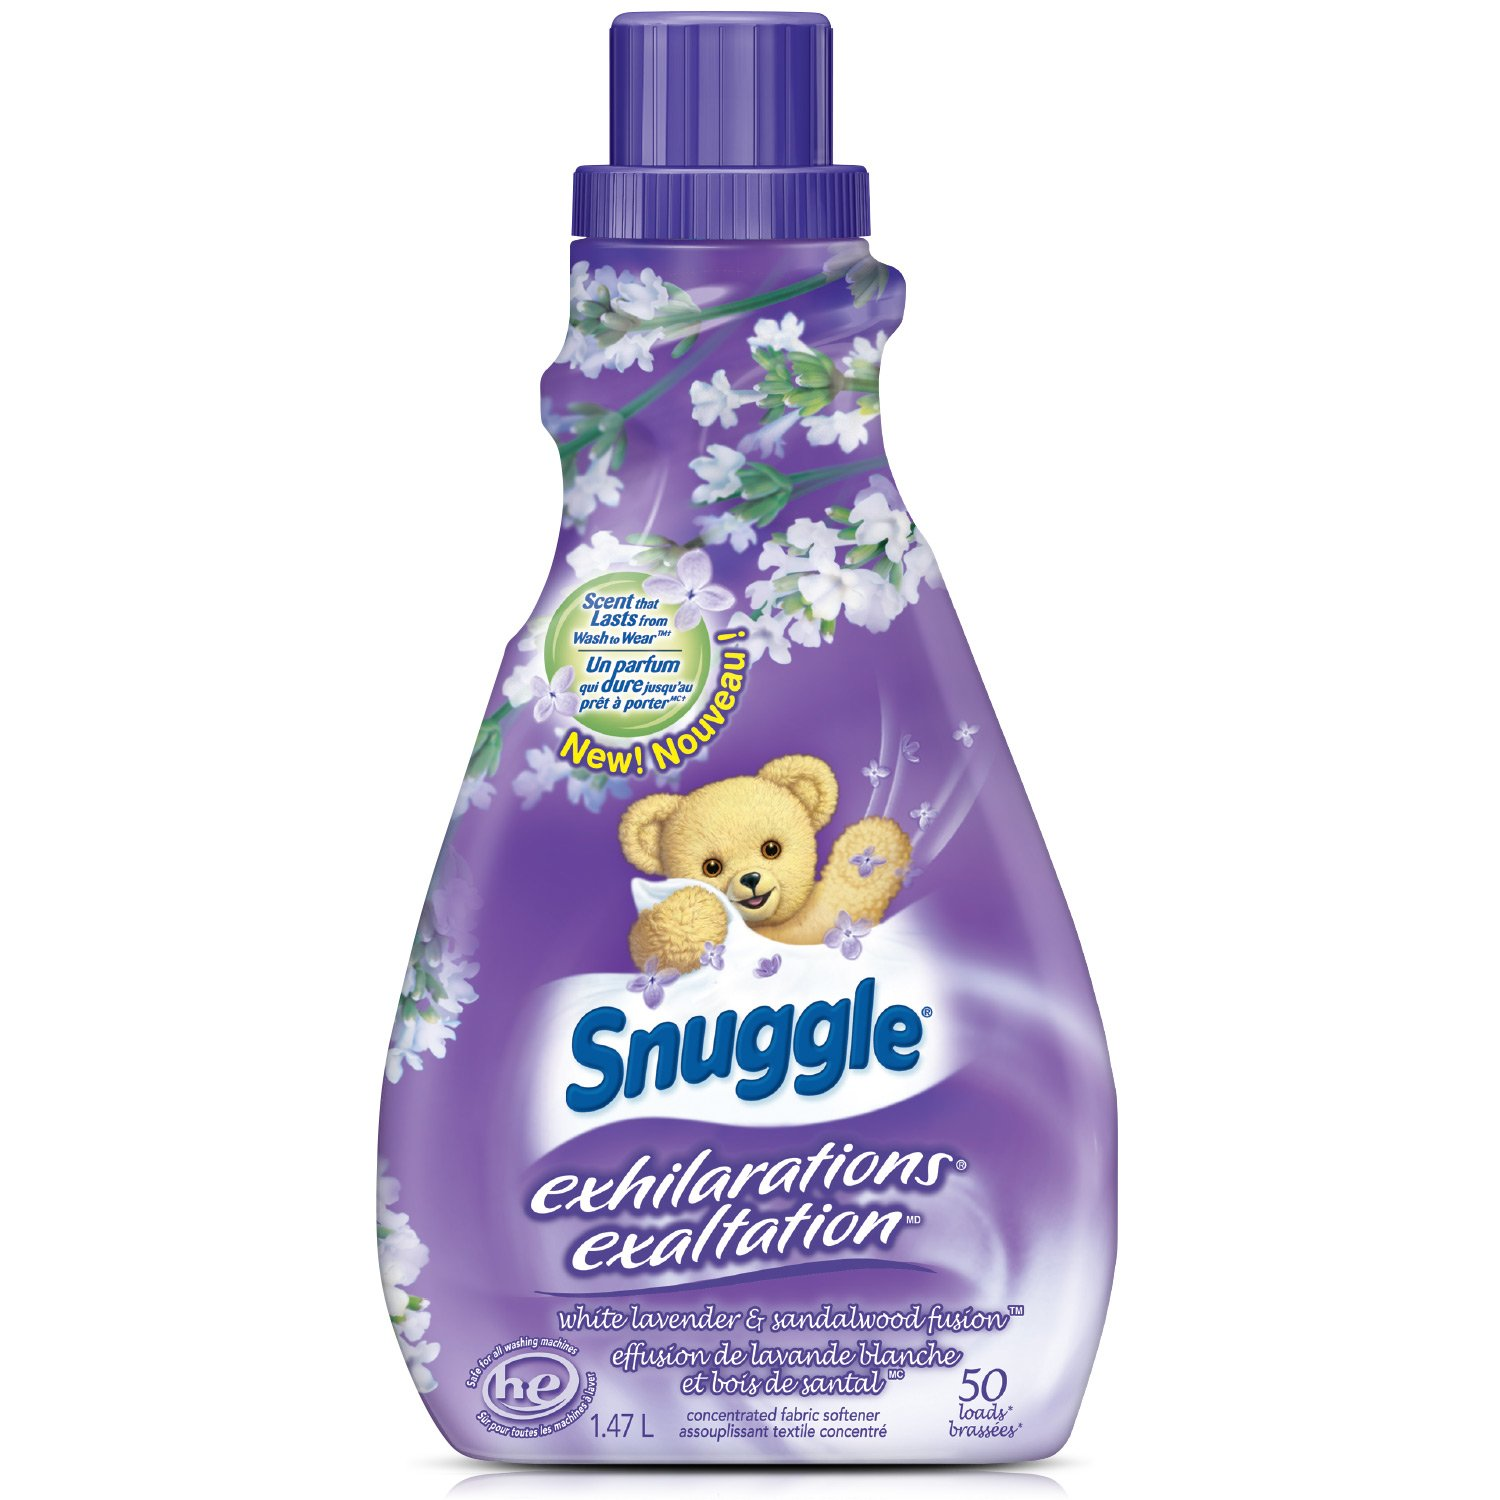 Amazon.com: Snuggle Exhilarations Liquid Fabric Softener, Blue Iris & Ocean Breeze, 50 Fluid Ounces: Health & Personal Care